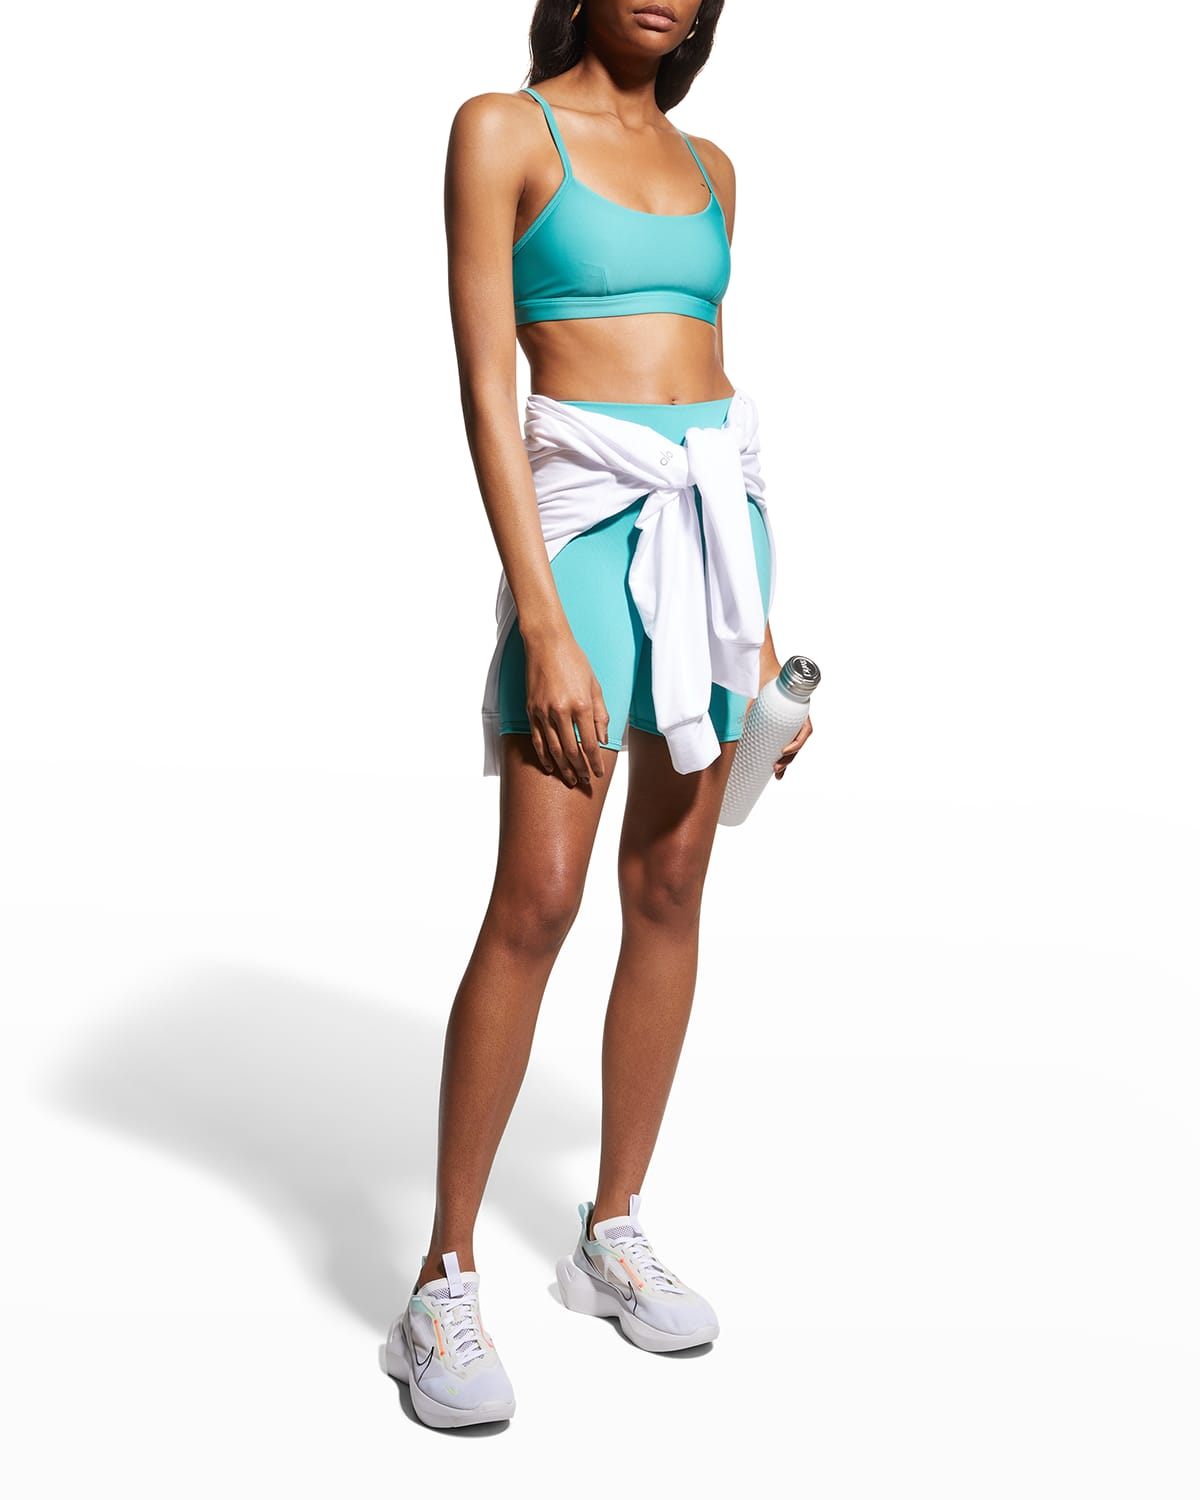 Airlift Intrigue Low-Impact Sports Bra